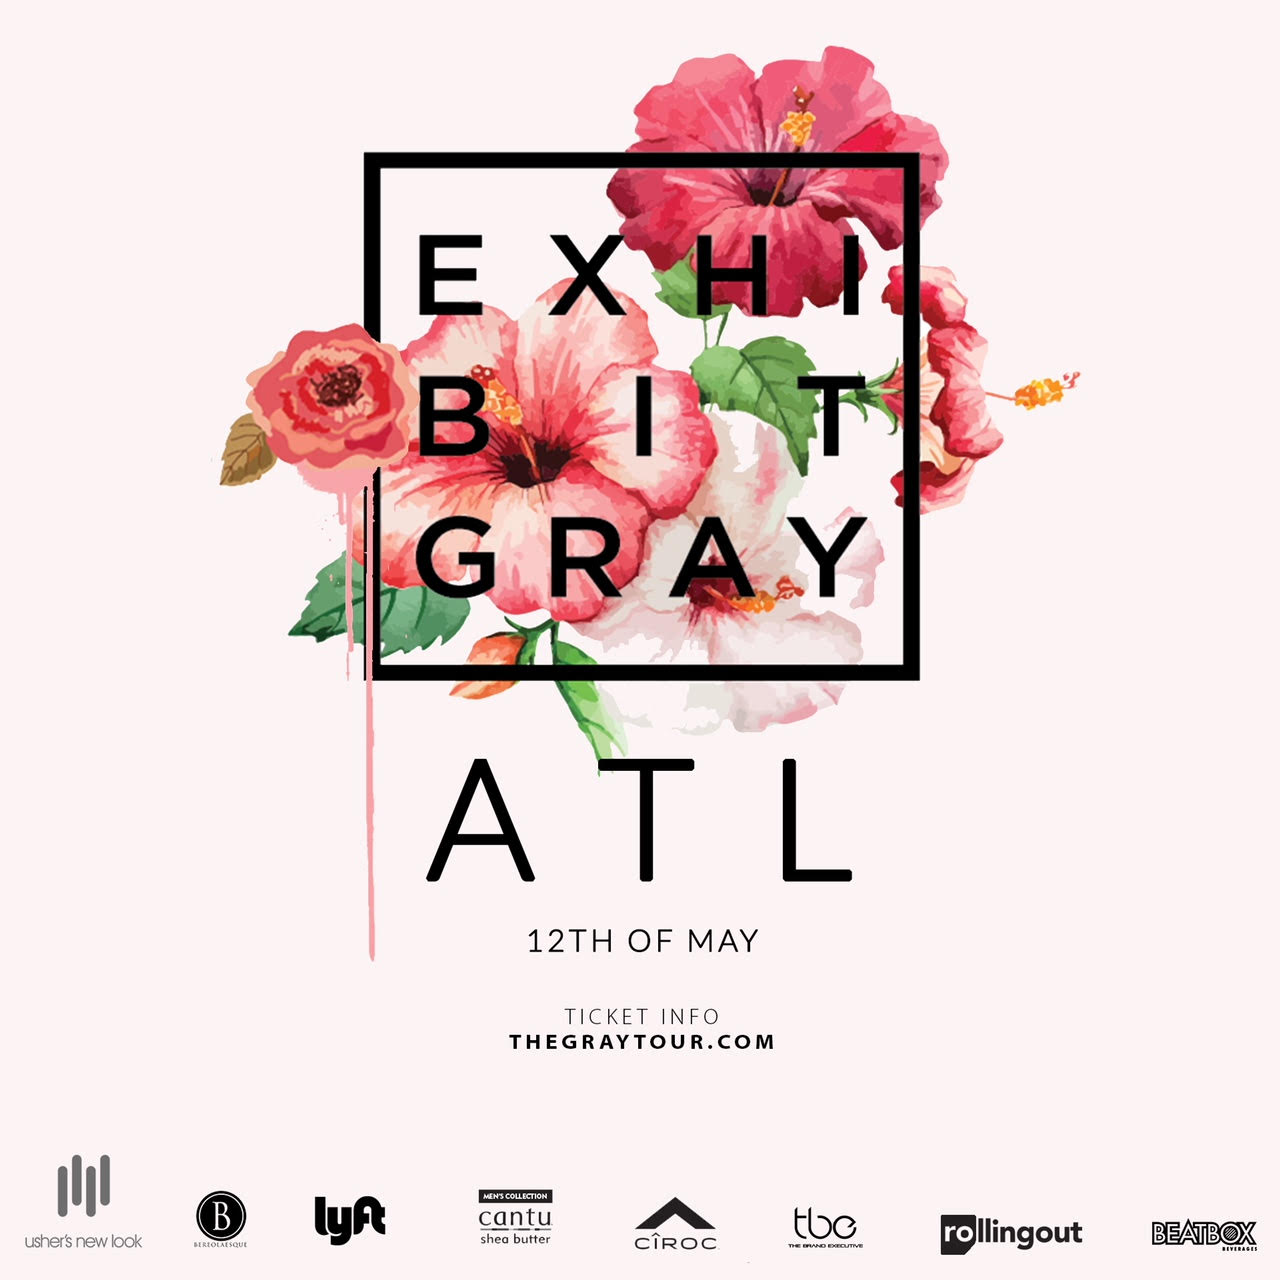 The Exhibit Gray Tour Comes to Atlanta for a Exclusive Private Mansion Experience